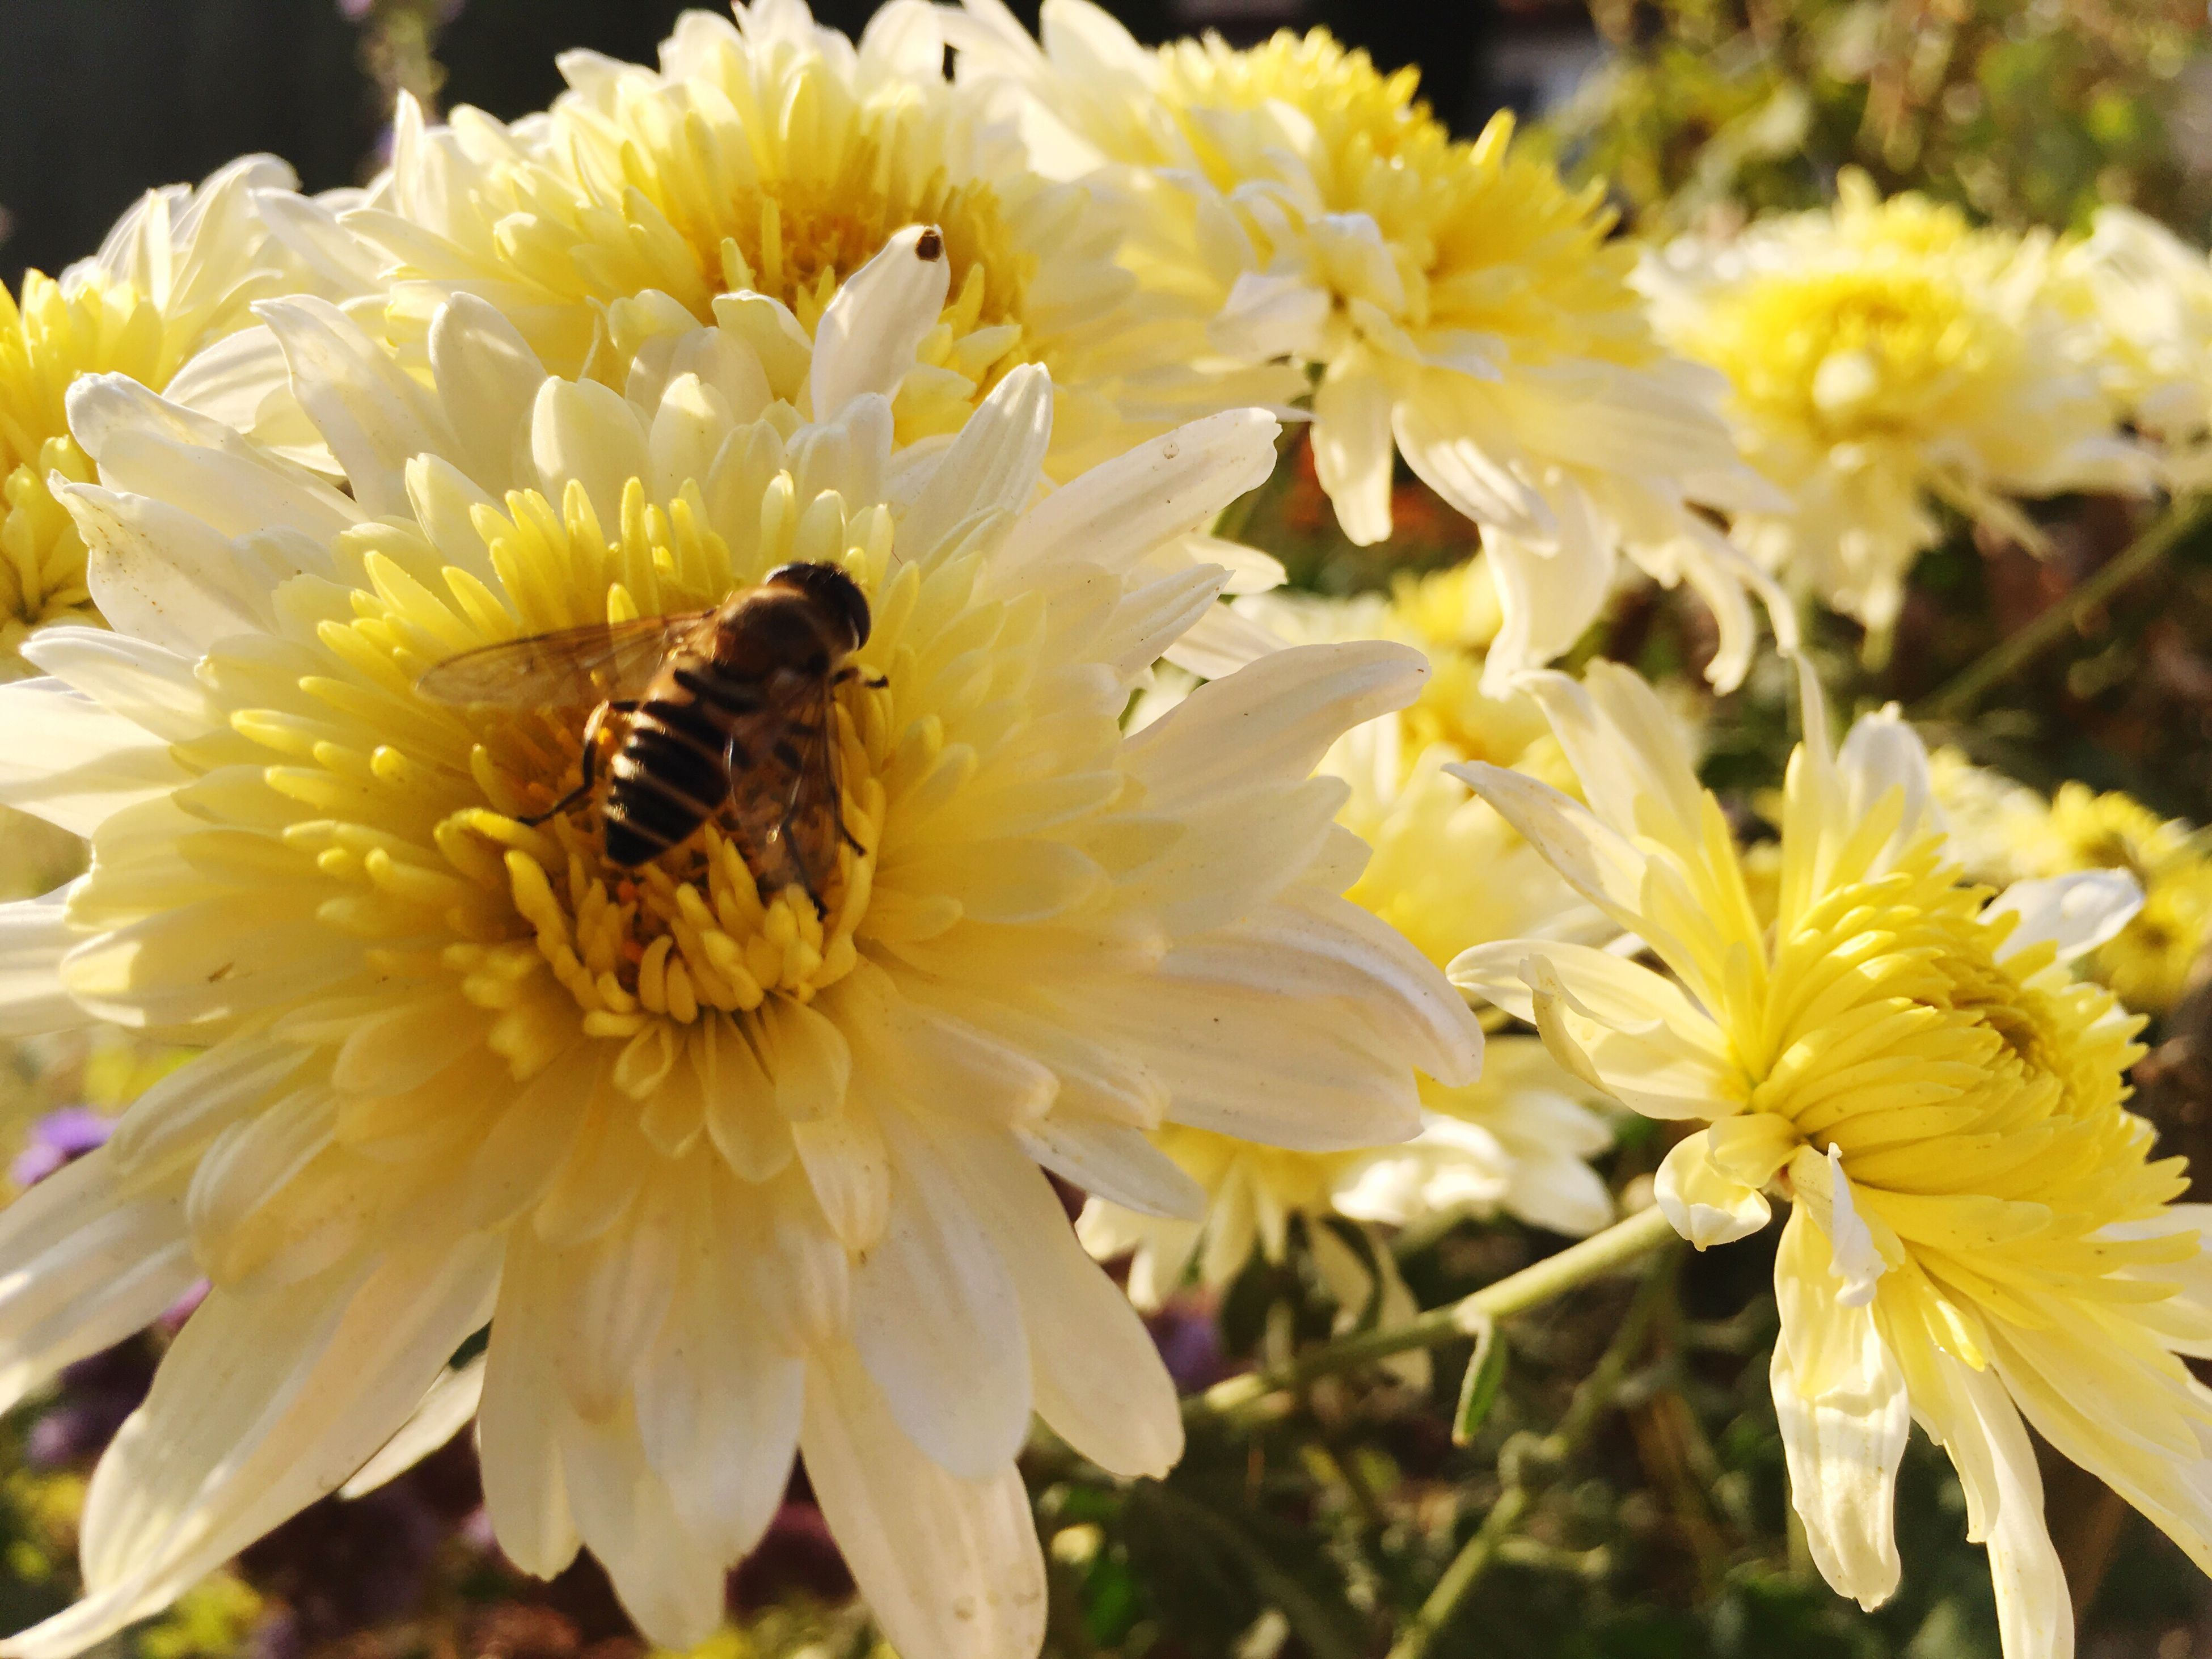 flower, petal, beauty in nature, fragility, flower head, nature, animal themes, one animal, growth, insect, freshness, animals in the wild, yellow, close-up, pollen, plant, blooming, outdoors, no people, day, pollination